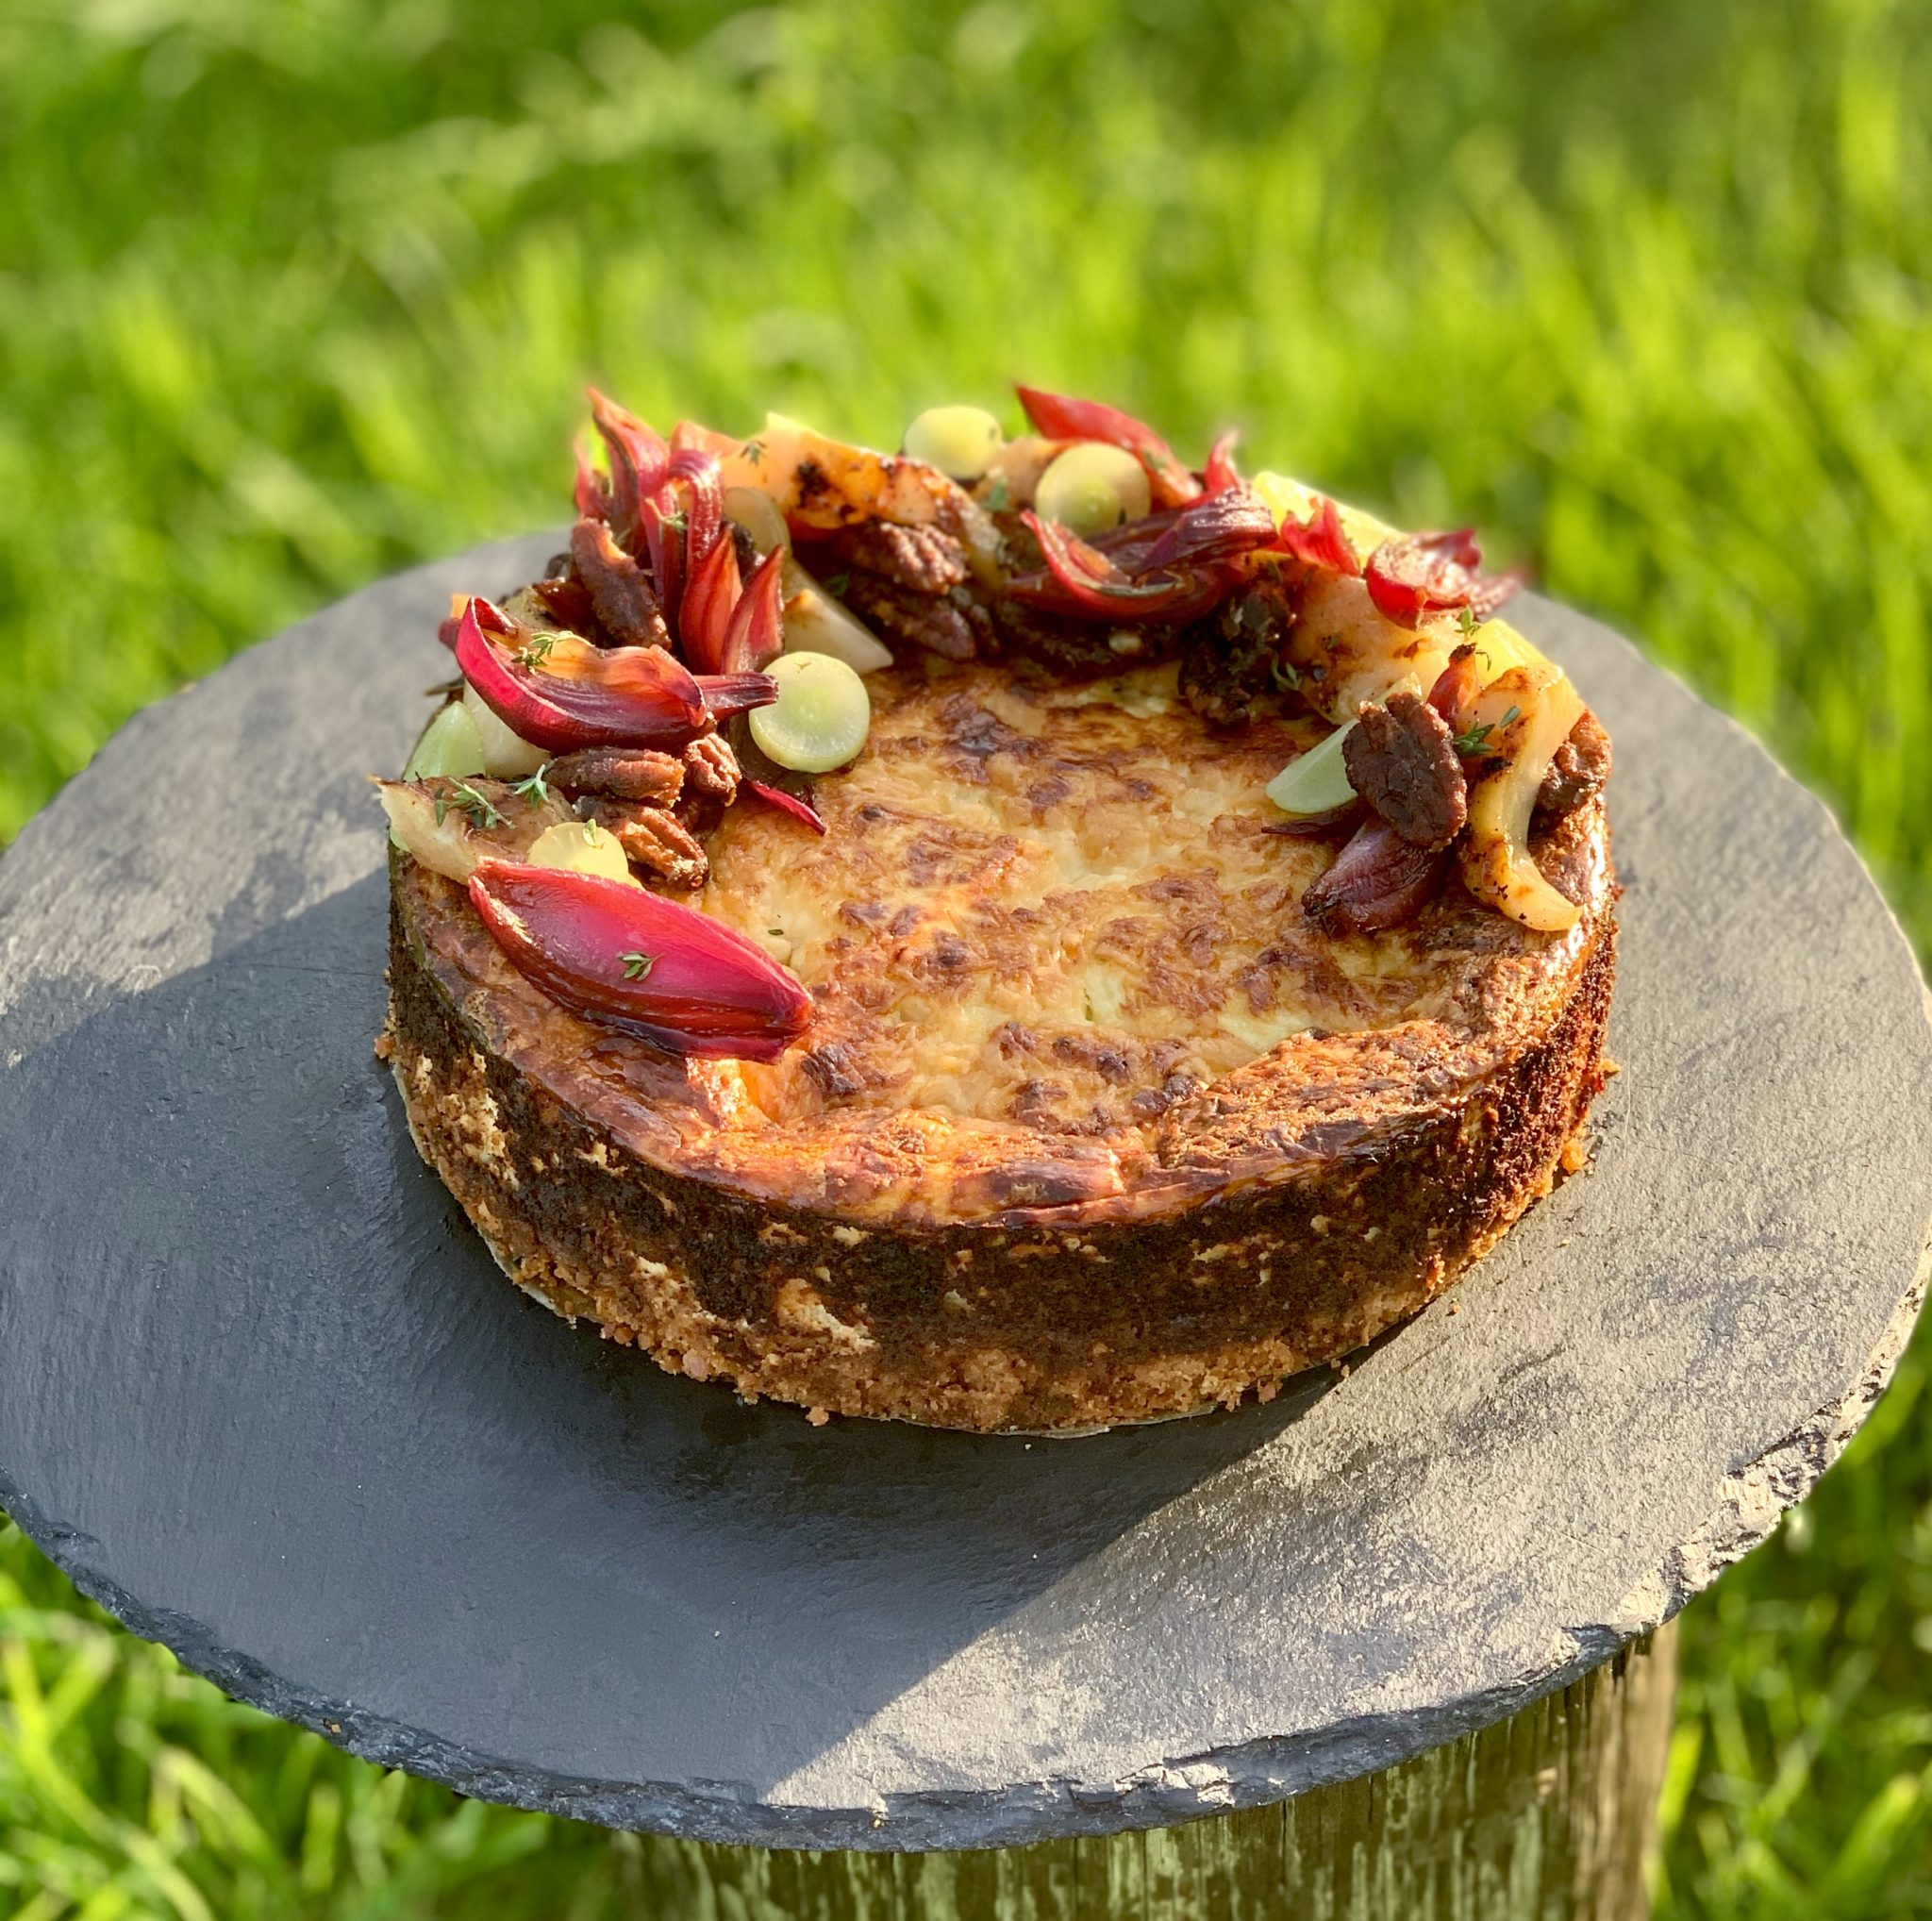 Godminster Cheeseboard Cheesecake by Steve James